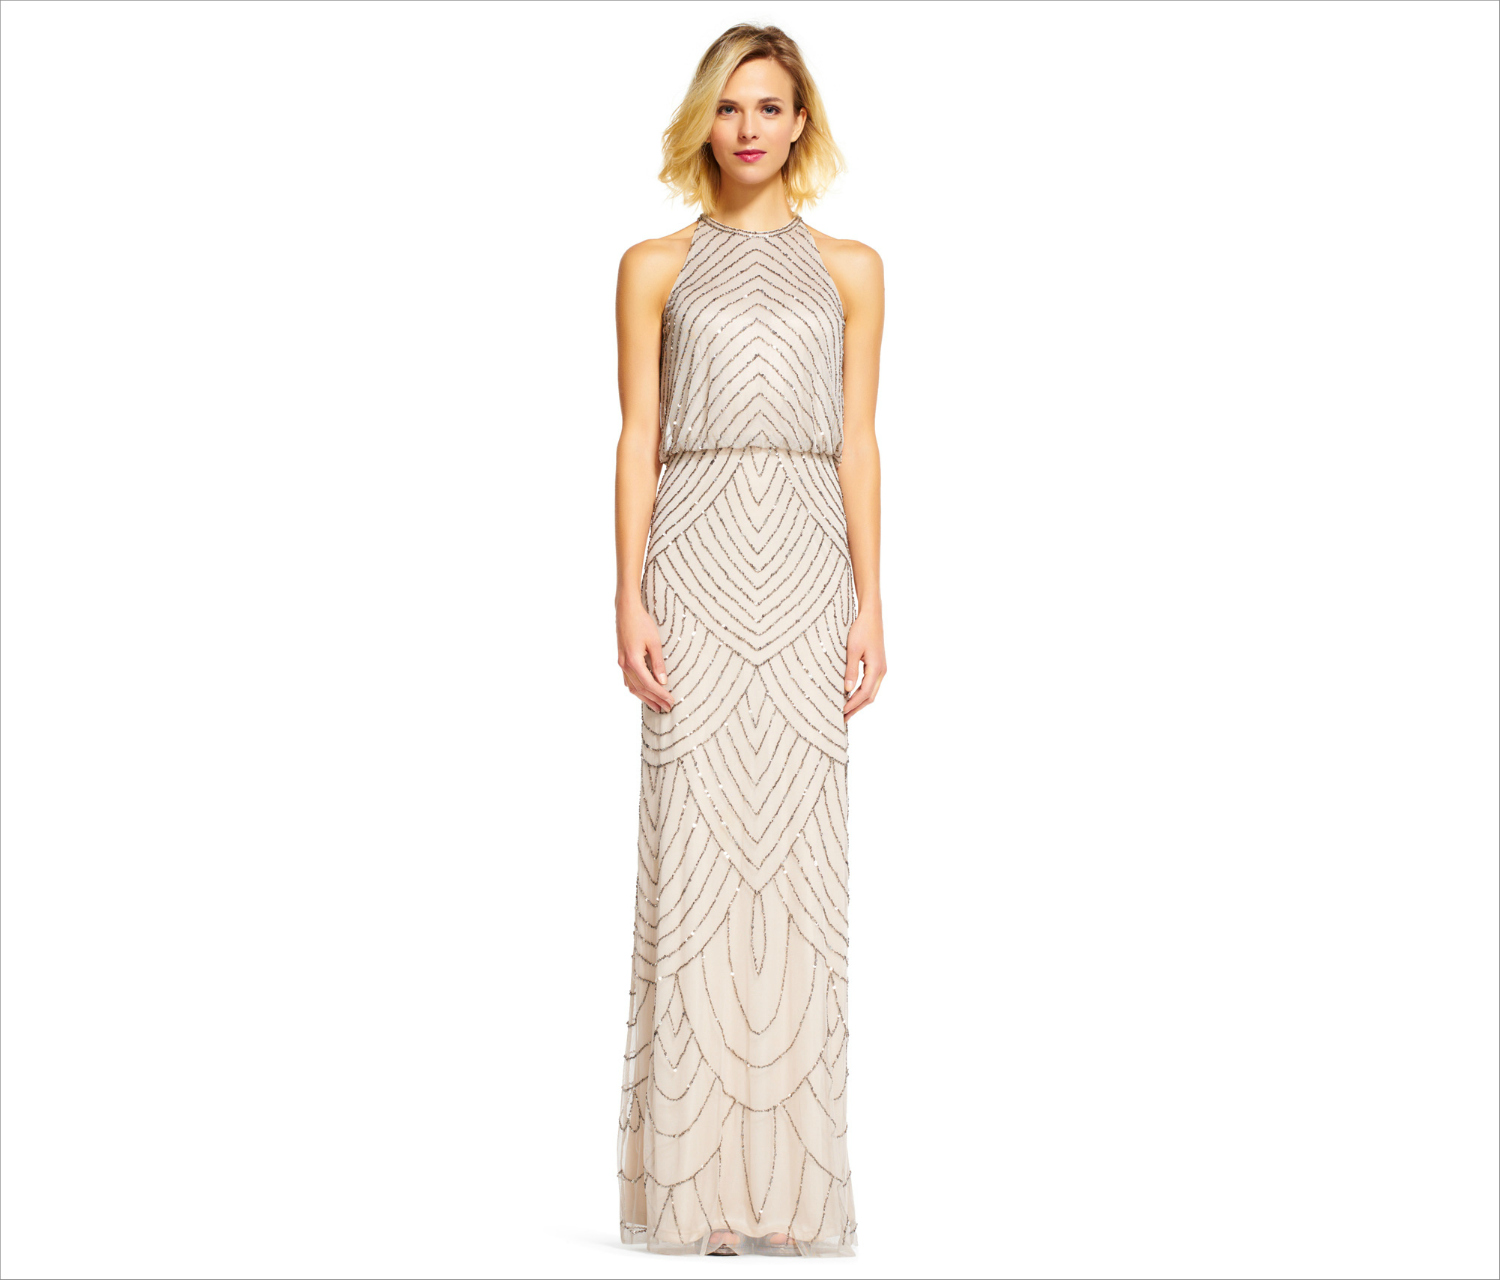 Adrianna Papell Art Deco beaded blouson bridesmaid dress with halter neckline nude beaded bridesmaid dress